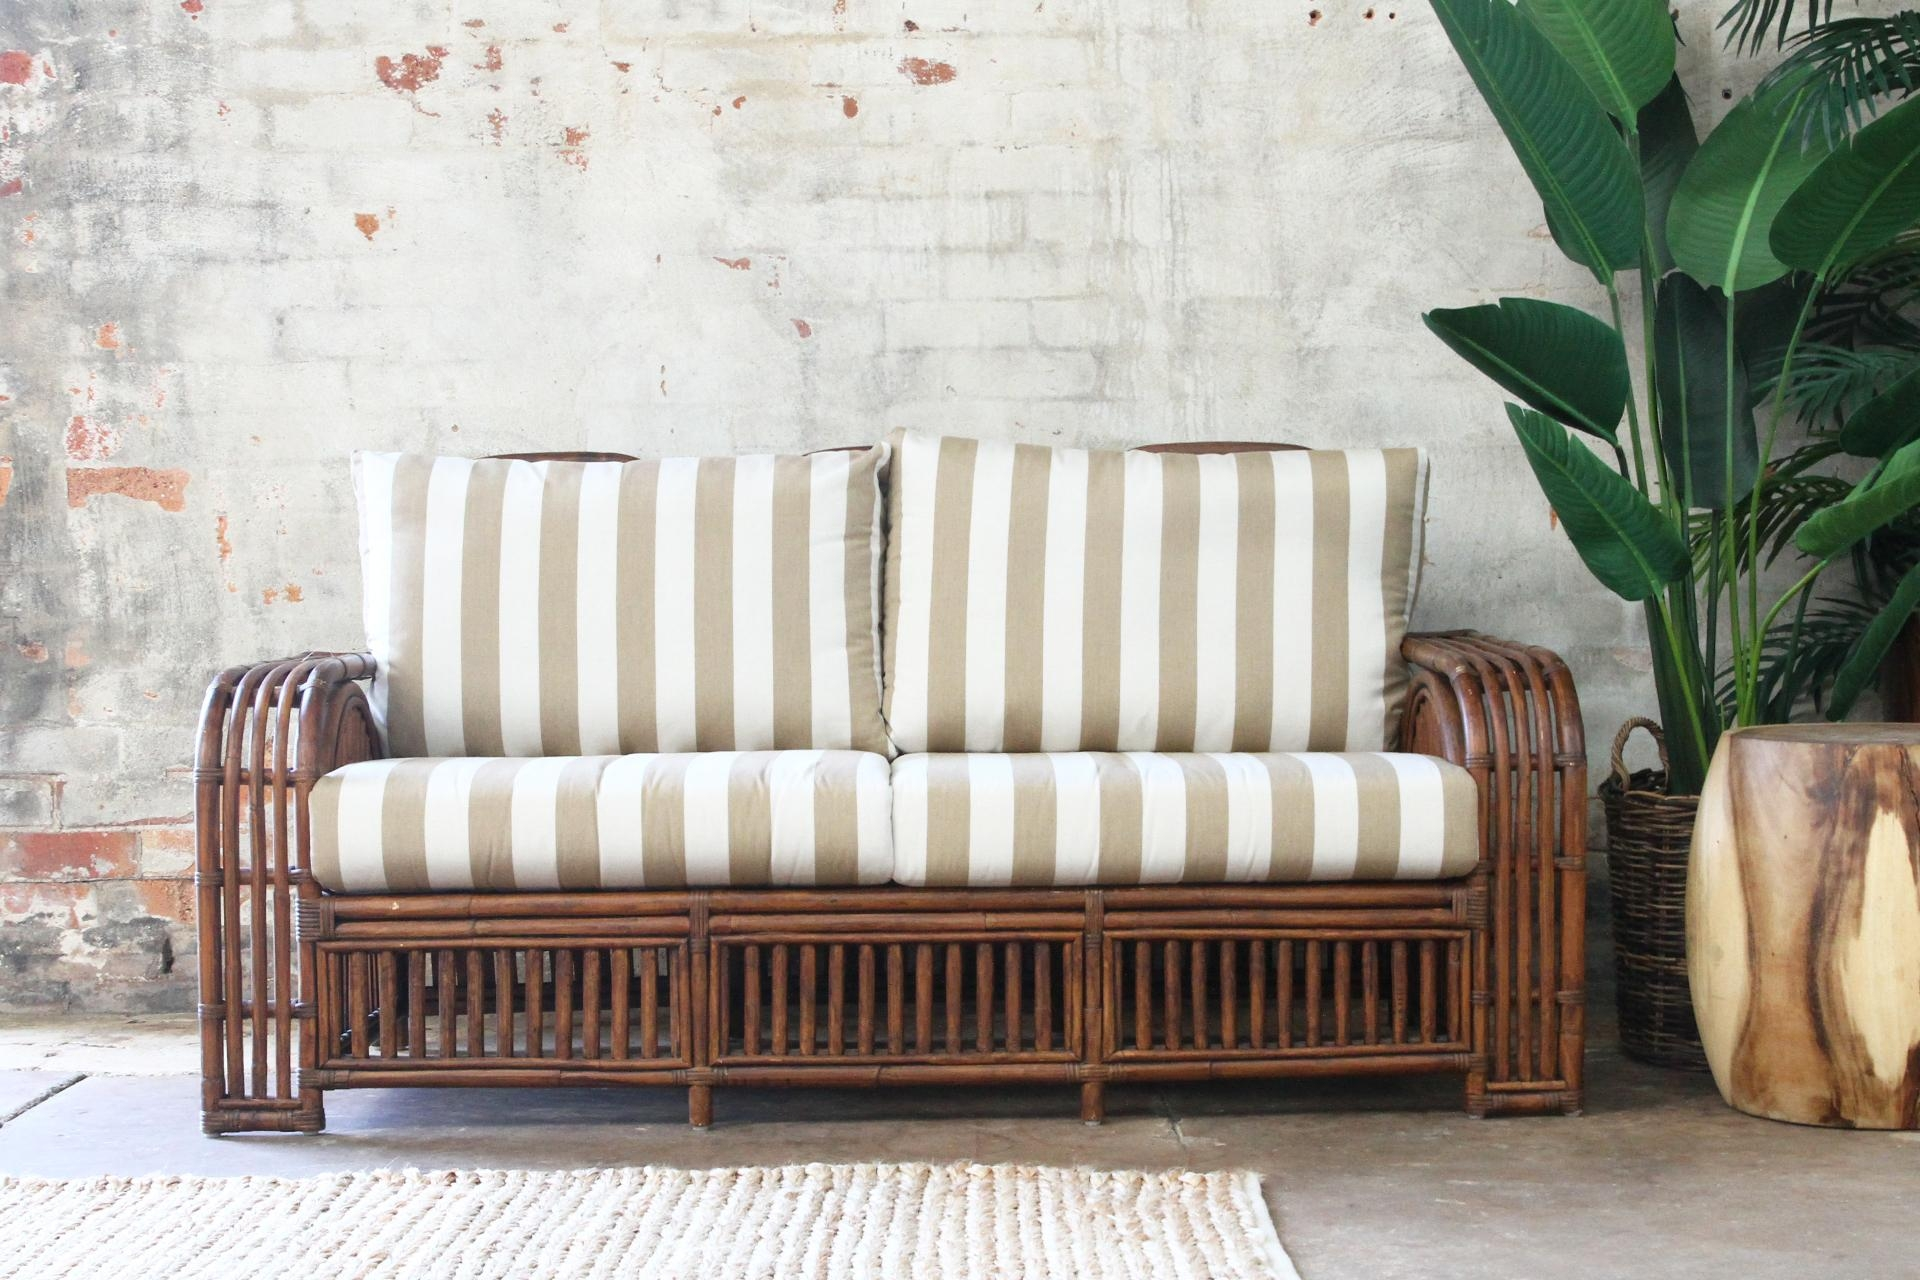 White Cane Furniture | Naturally Cane Rattan And Wicker Furniture Within White Cane Sofas (Image 25 of 25)